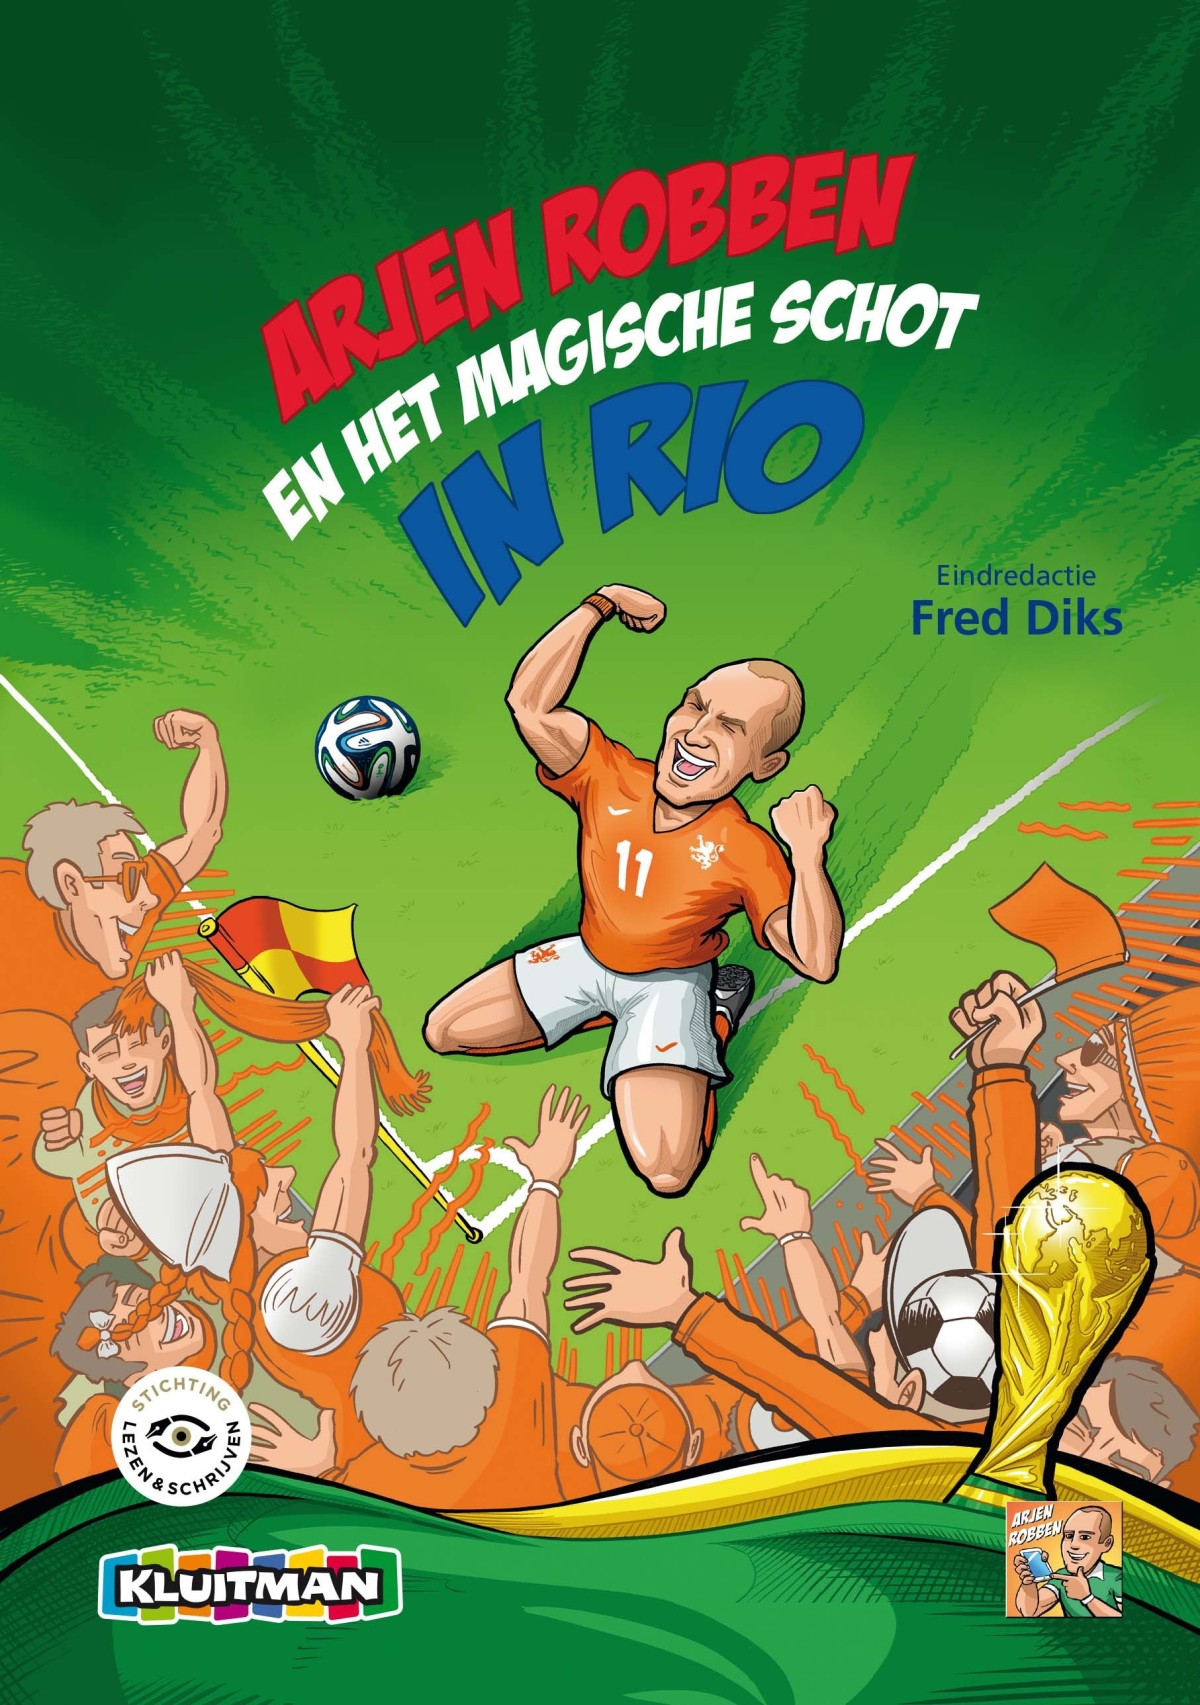 https://antoinettesboekencommentaar.files.wordpress.com/2014/07/arjen-robben-rio.jpg?w=1200